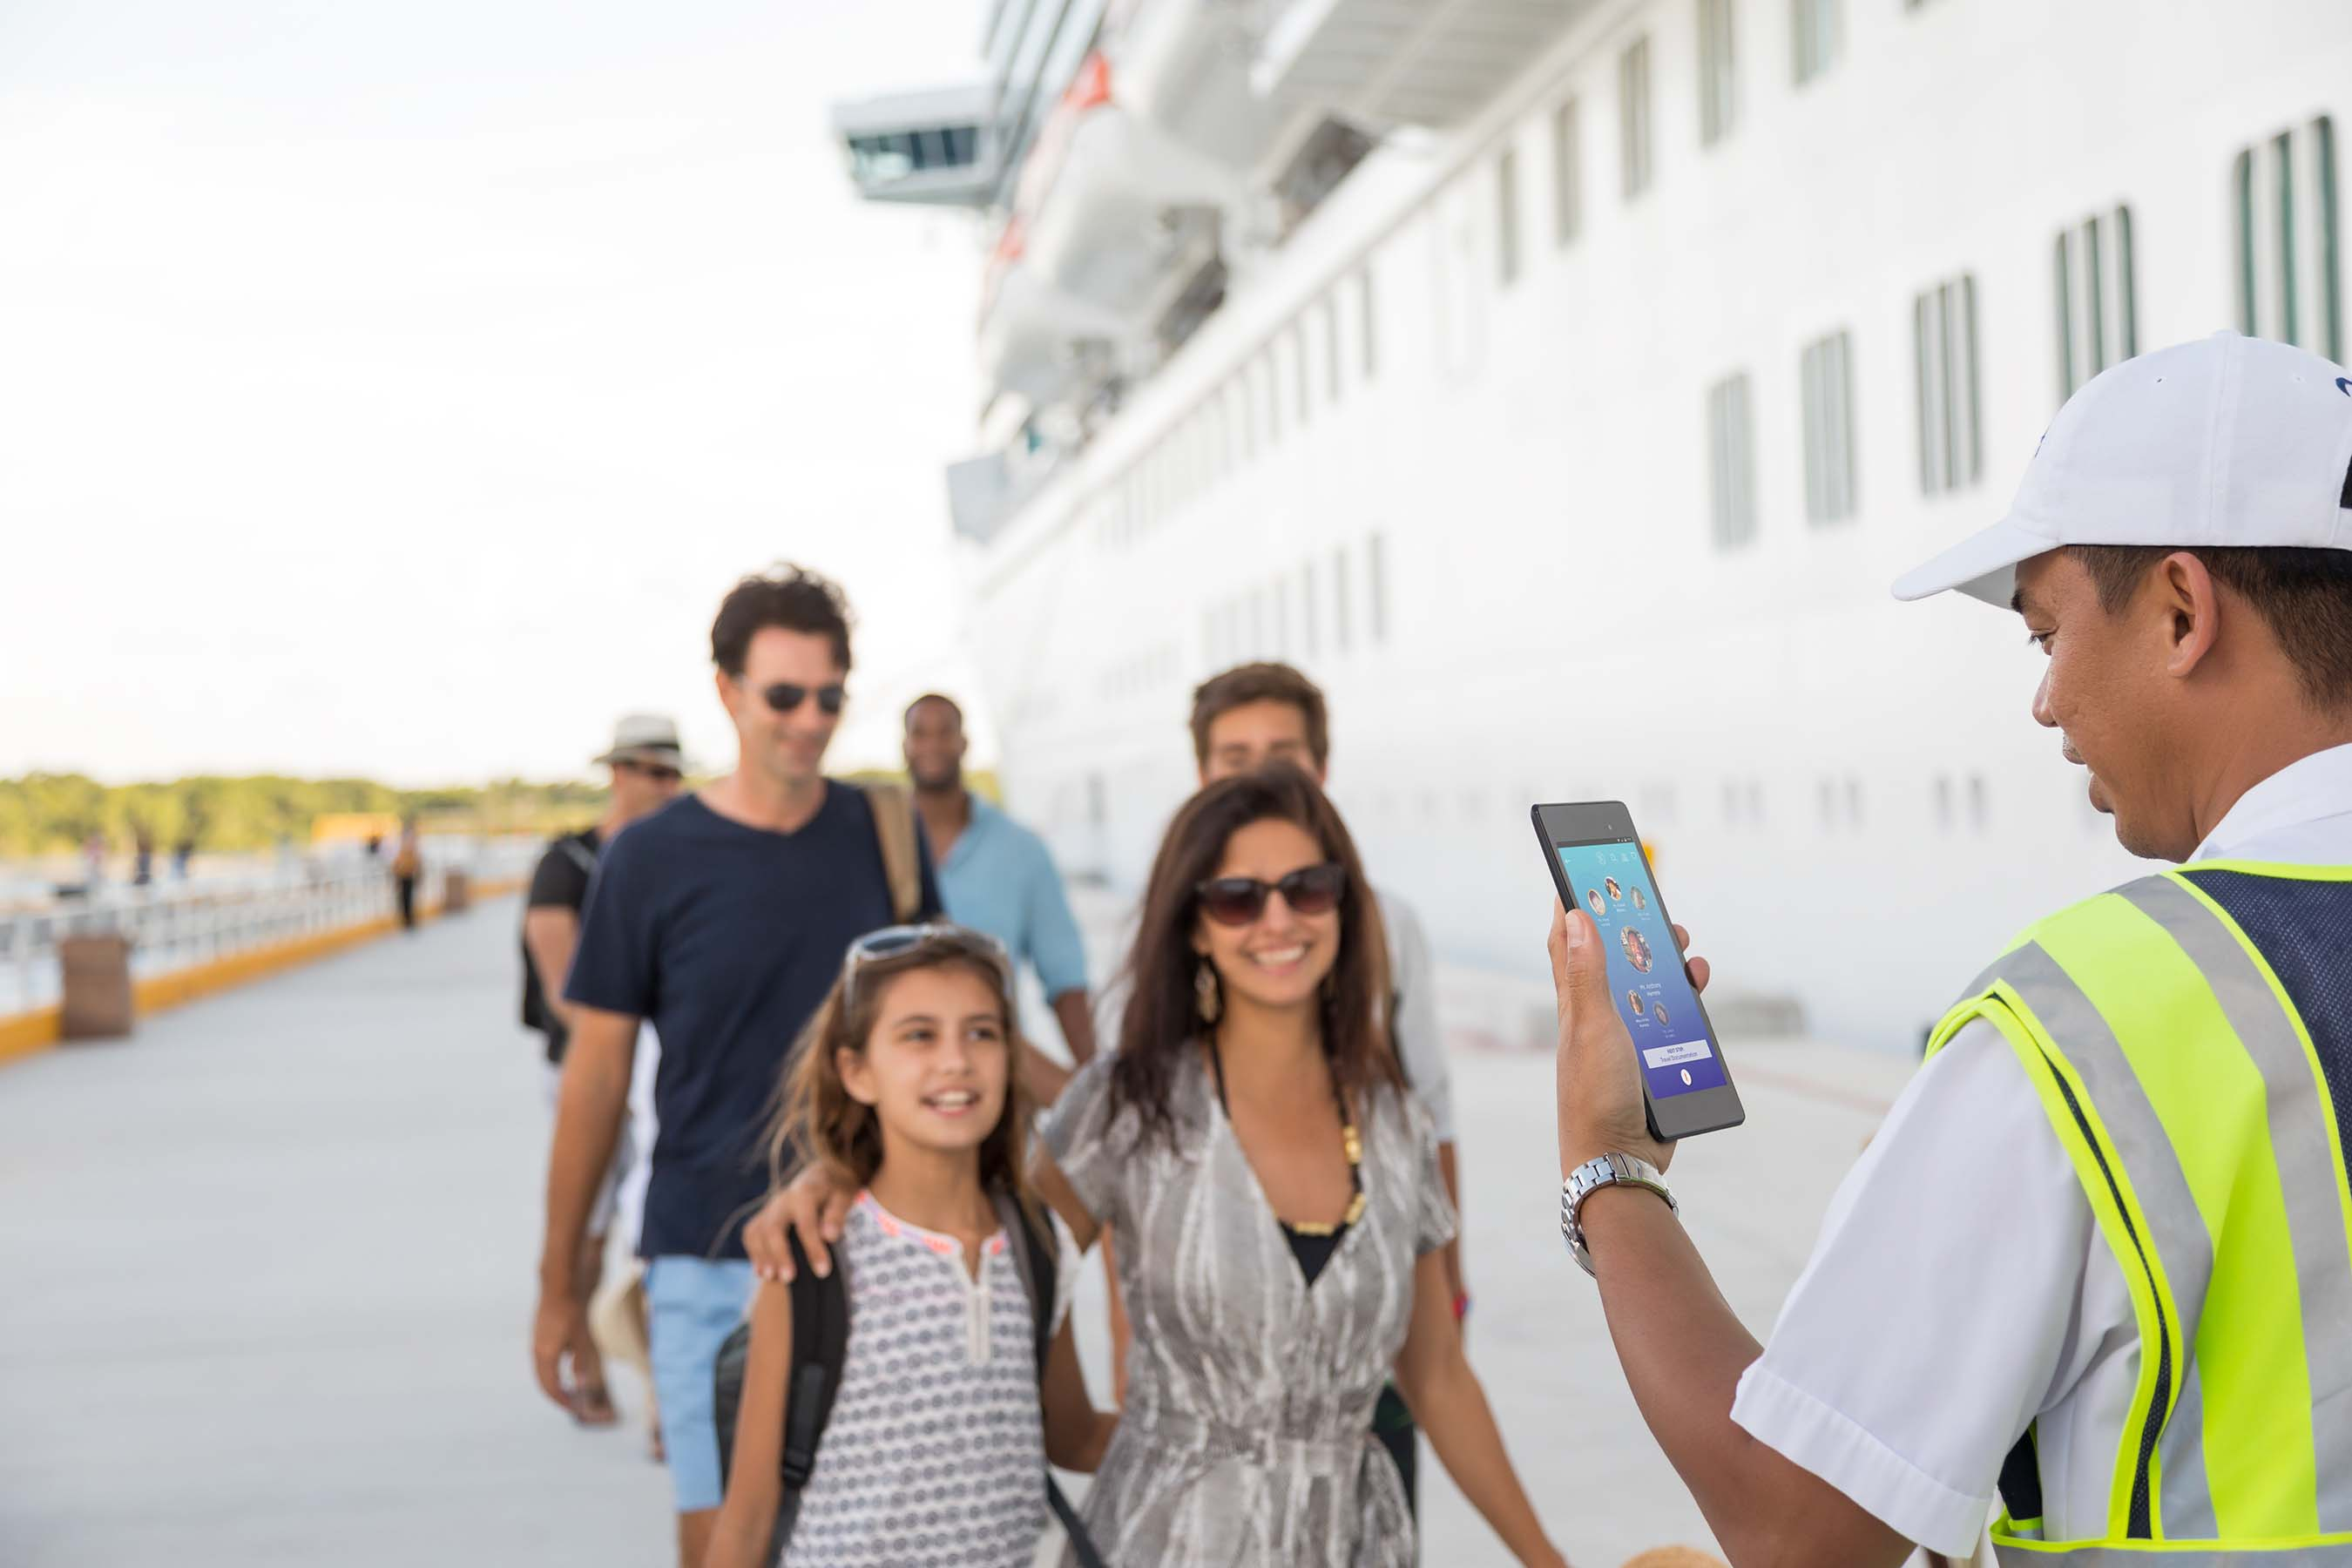 Embarkation will be made simpler and faster with Ocean Medallion owners able to walk right onto the ship with check-in completed.